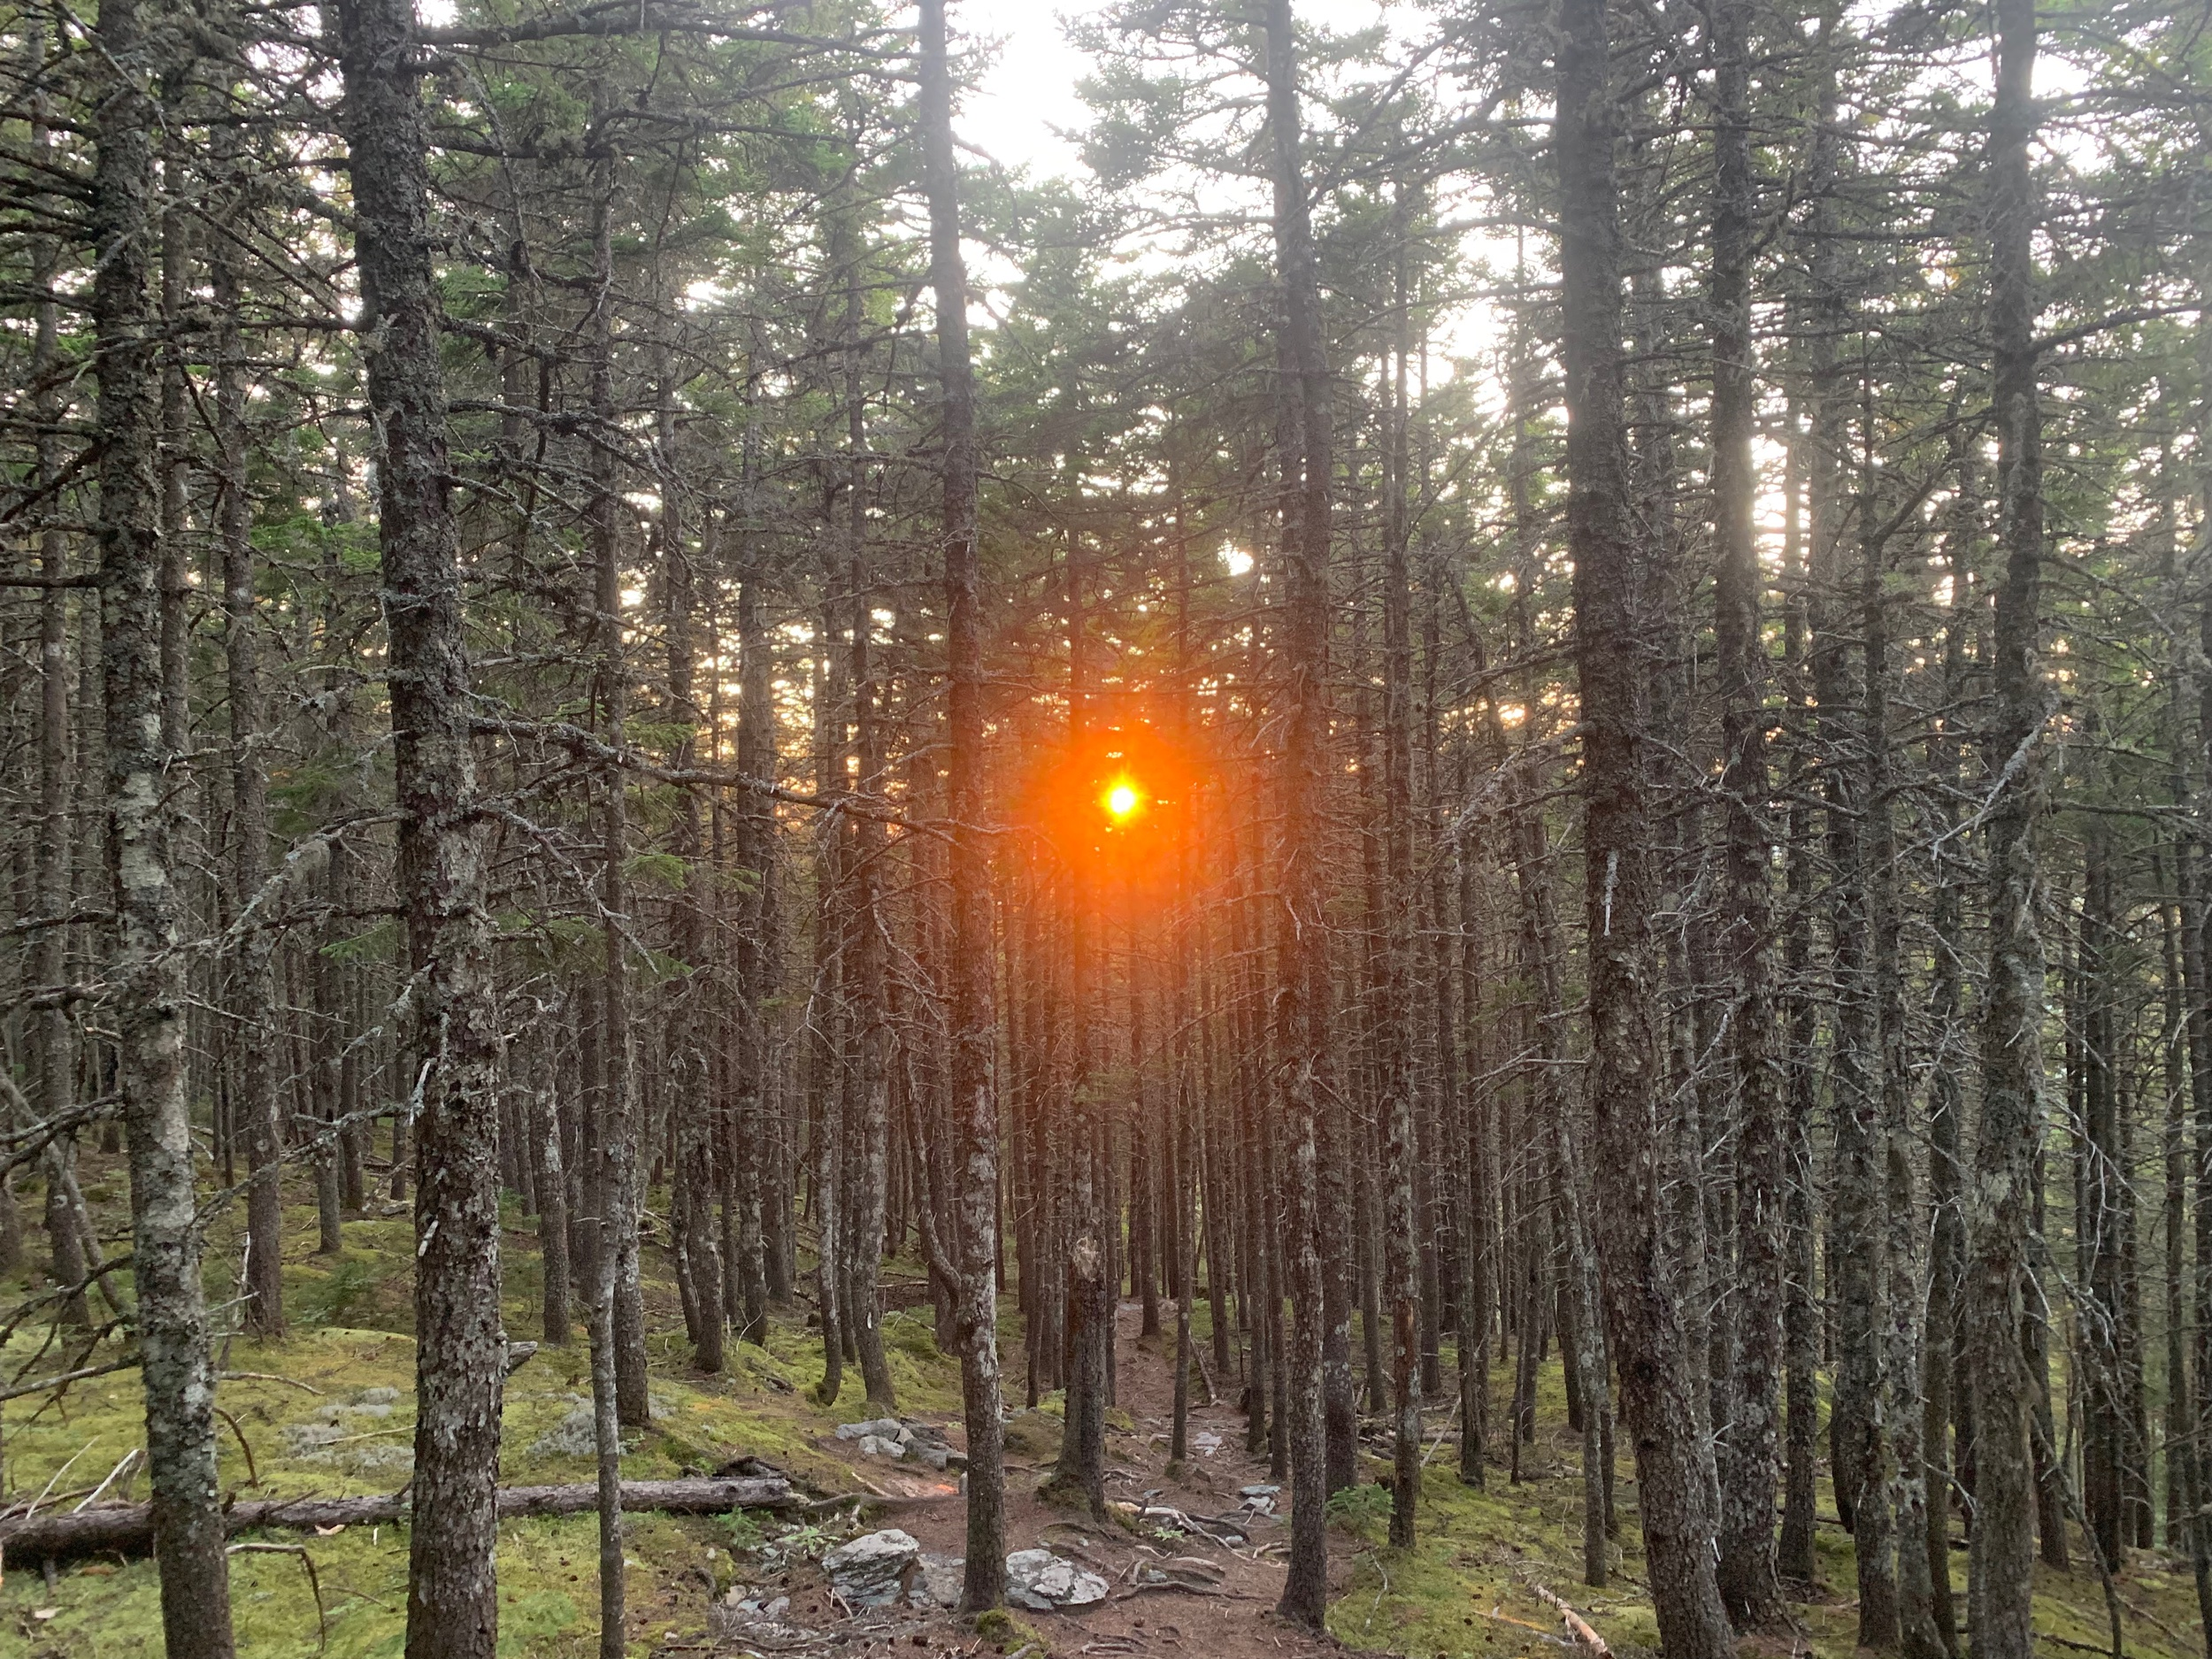 Sunset on the 100 mile wilderness